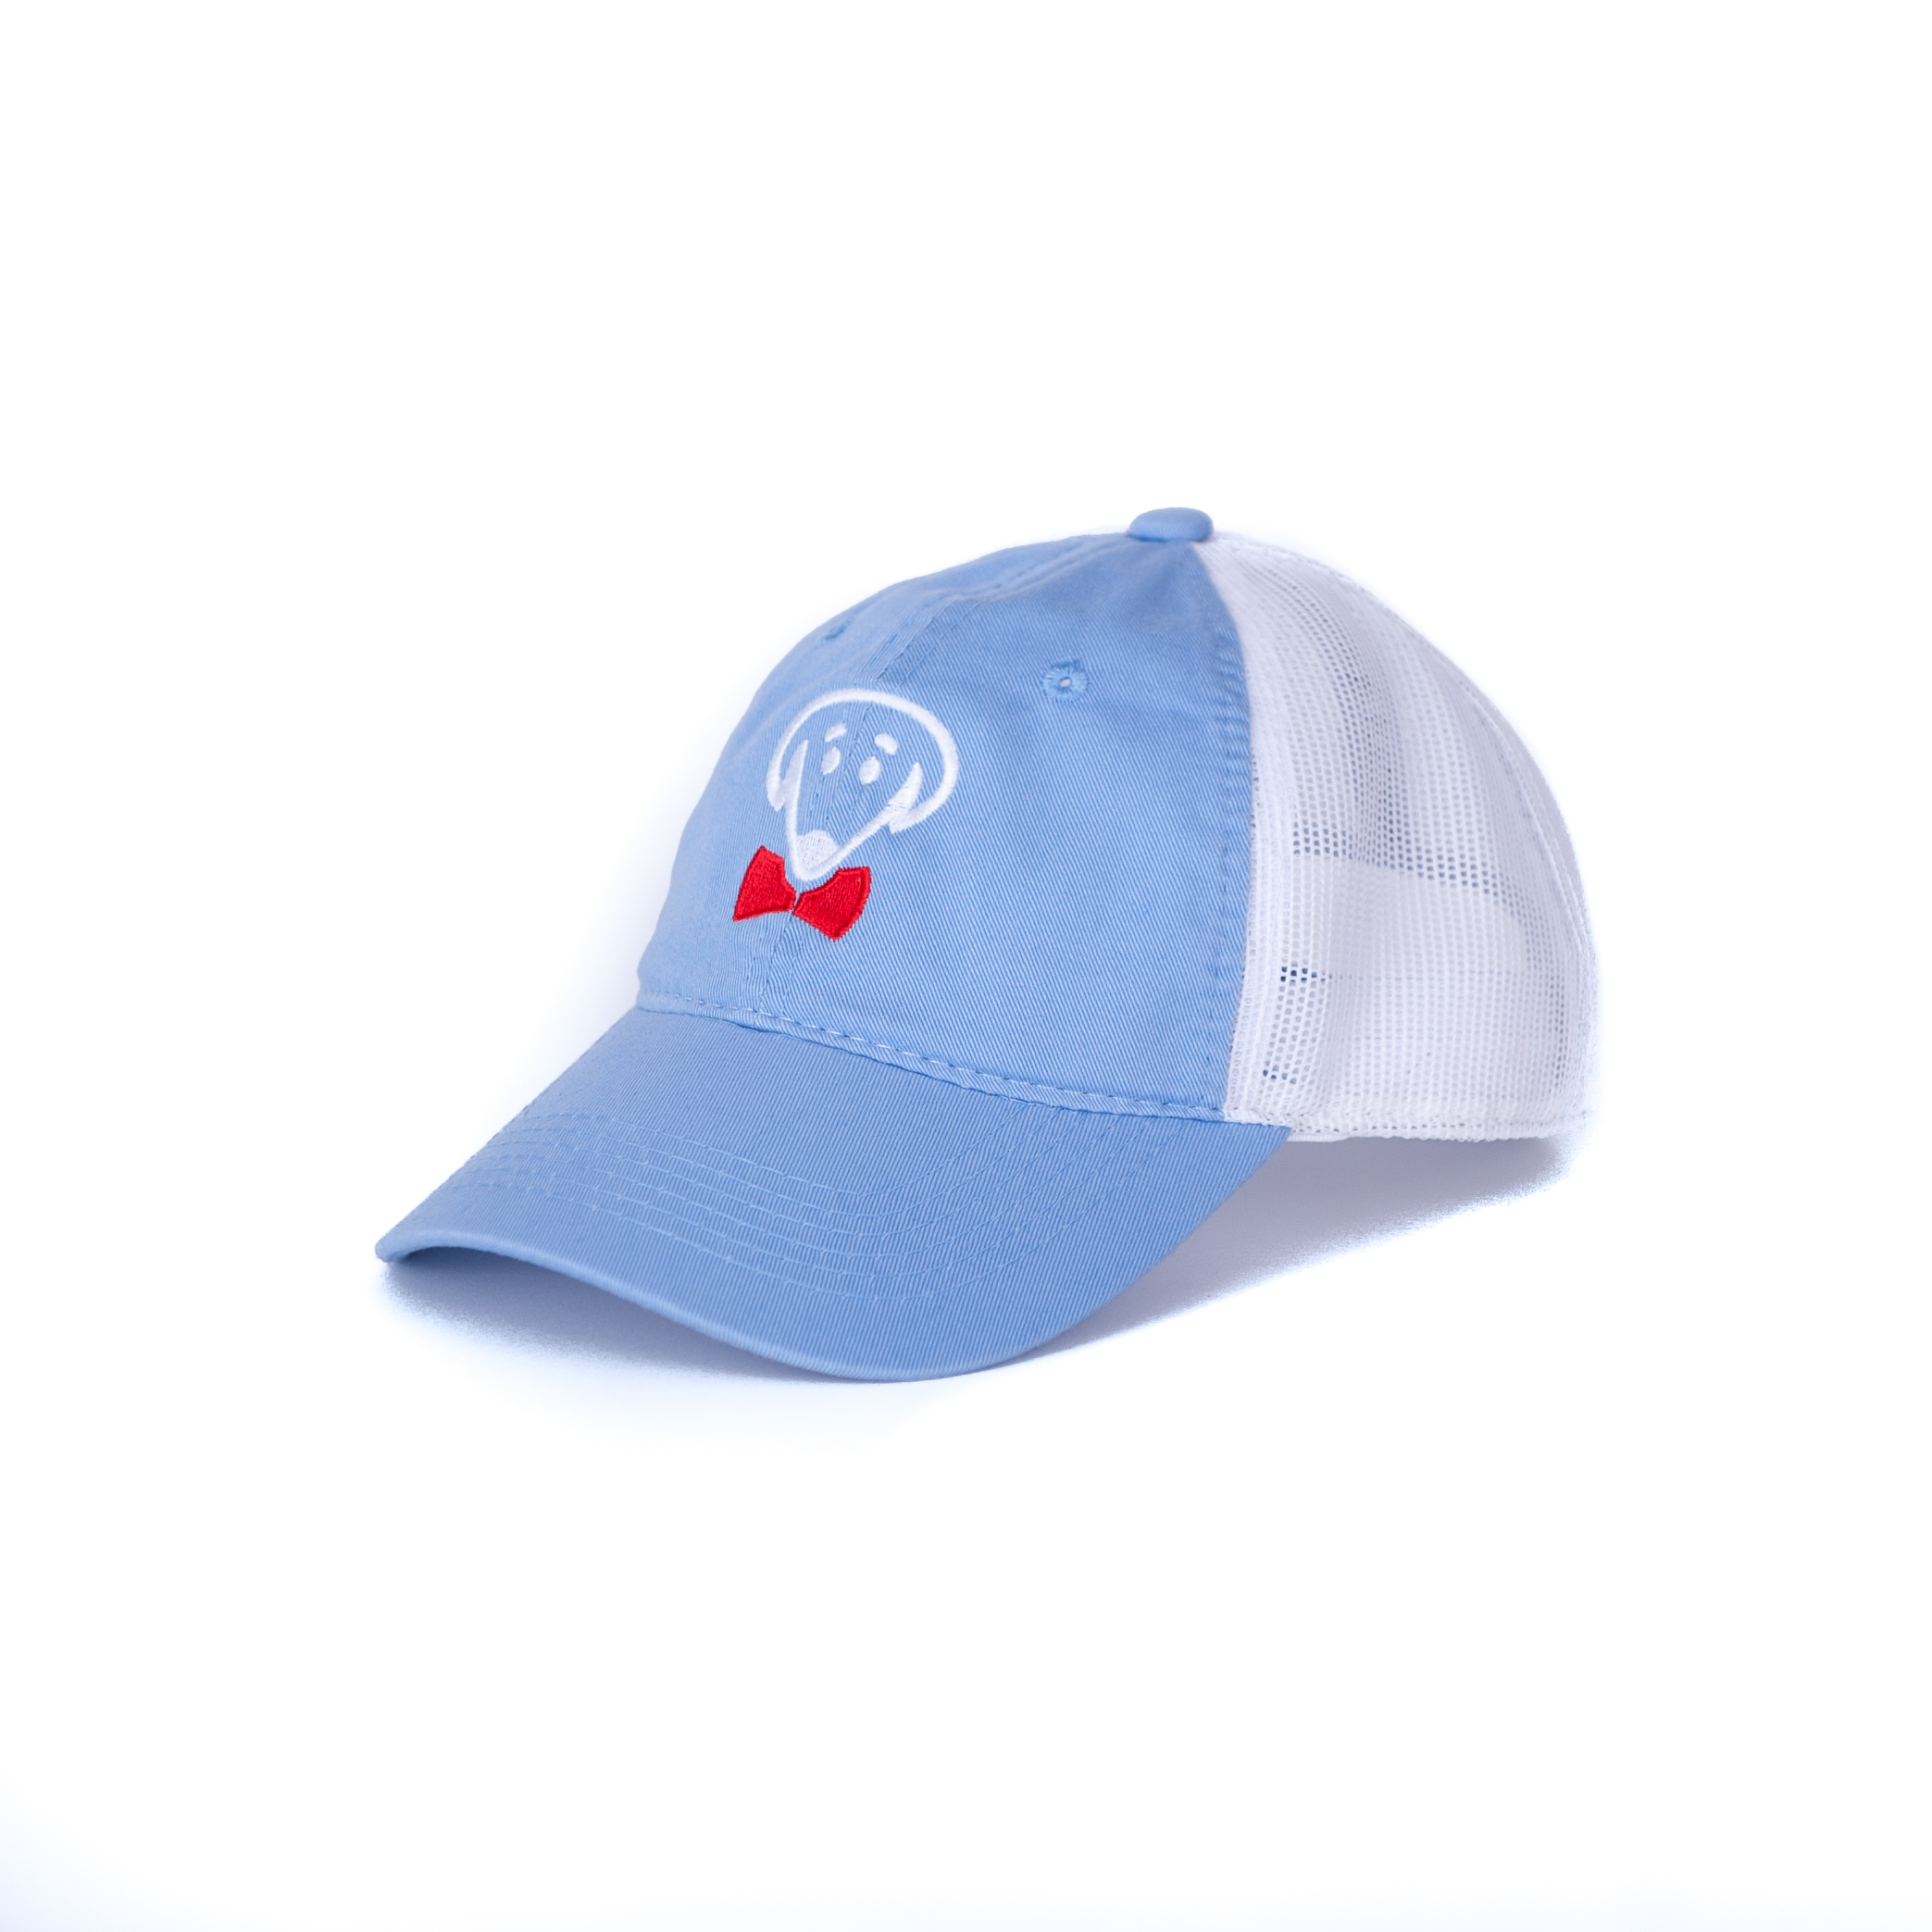 Bow Ties Dog Logo Baseball Hat-Light Blue and White - Bow Ties b70f857ede3